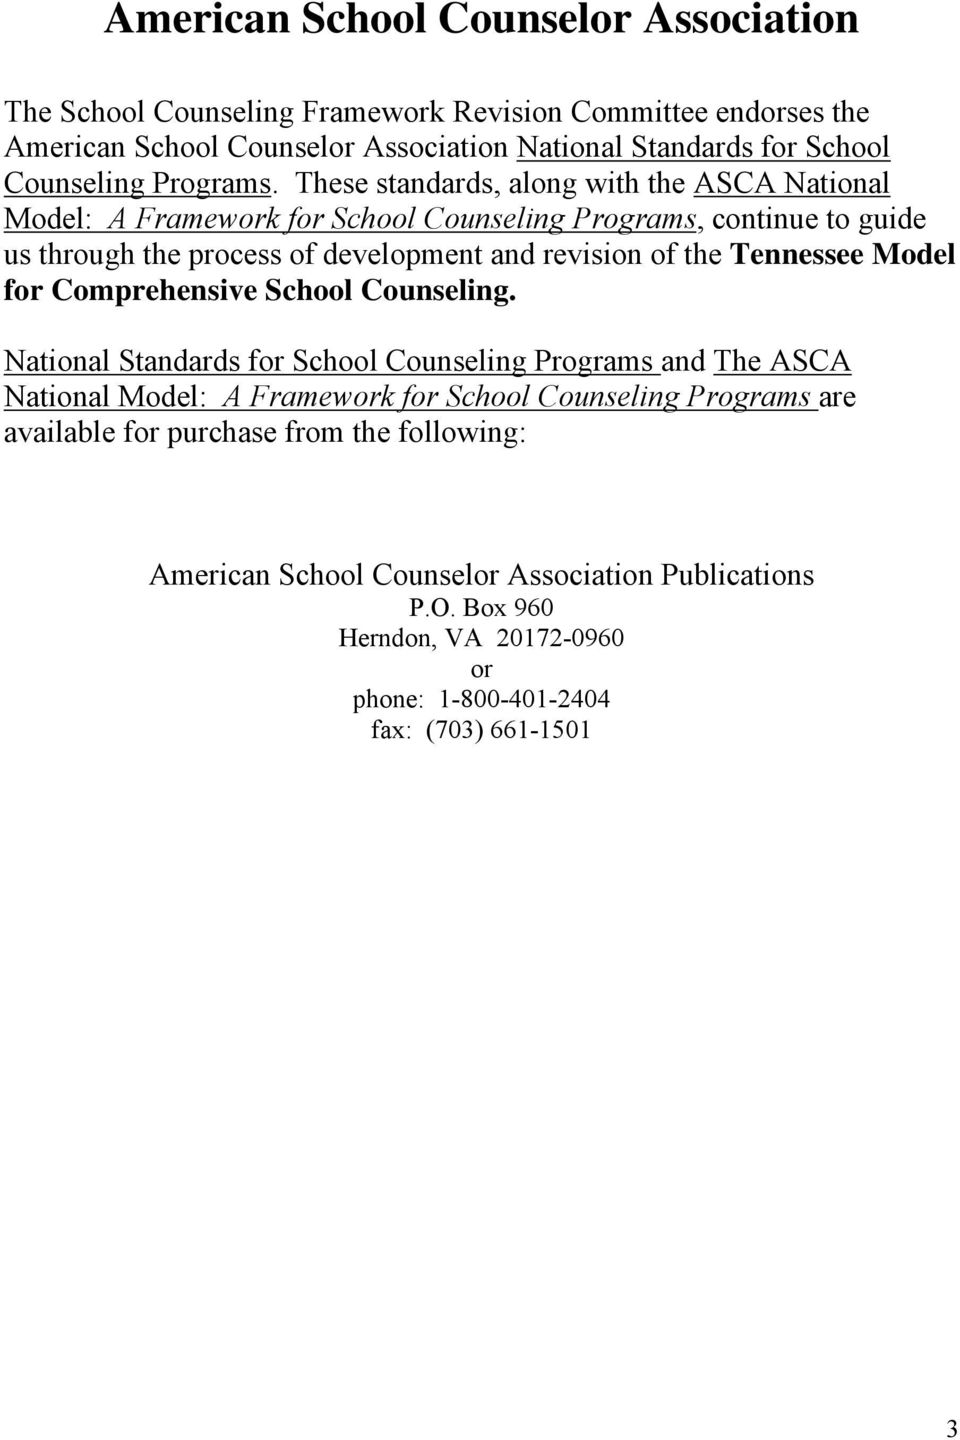 These standards, along with the ASCA National Model: A Framework for School Counseling Programs, continue to guide us through the process of development and revision of the